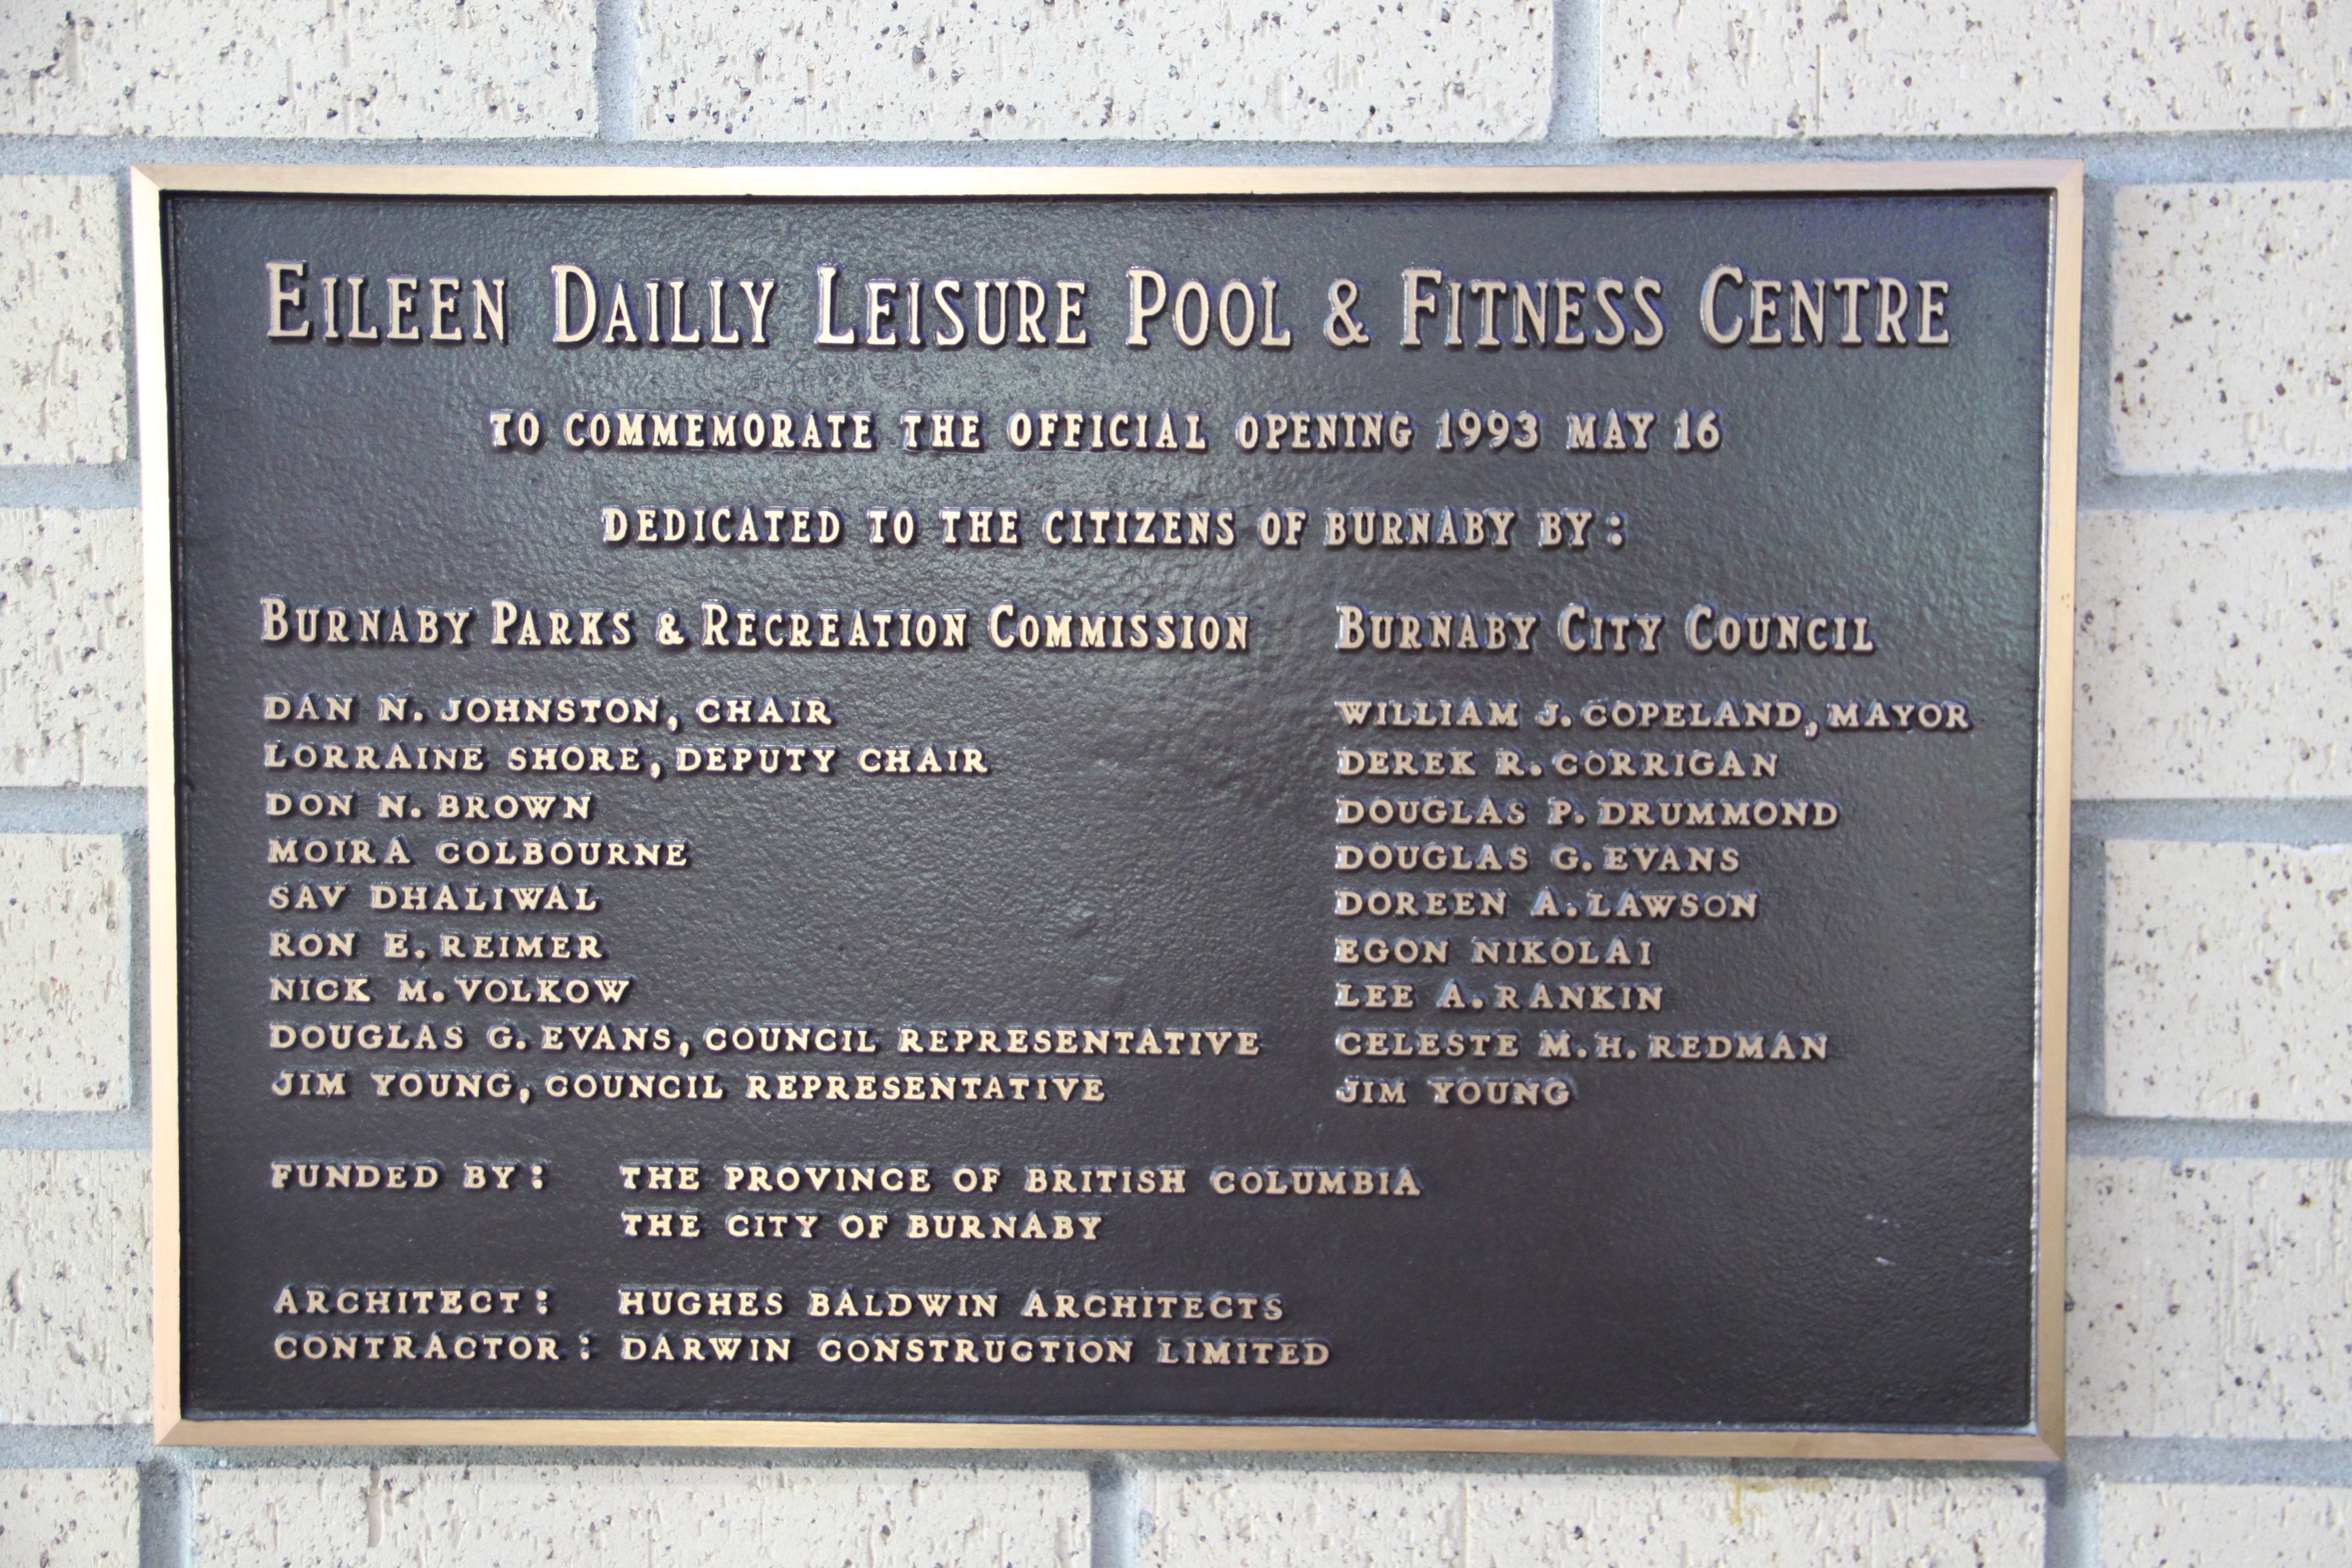 Building Dedication Plaque Wording Samples File Burnaby Eileen Dailly Pool Building Plaque